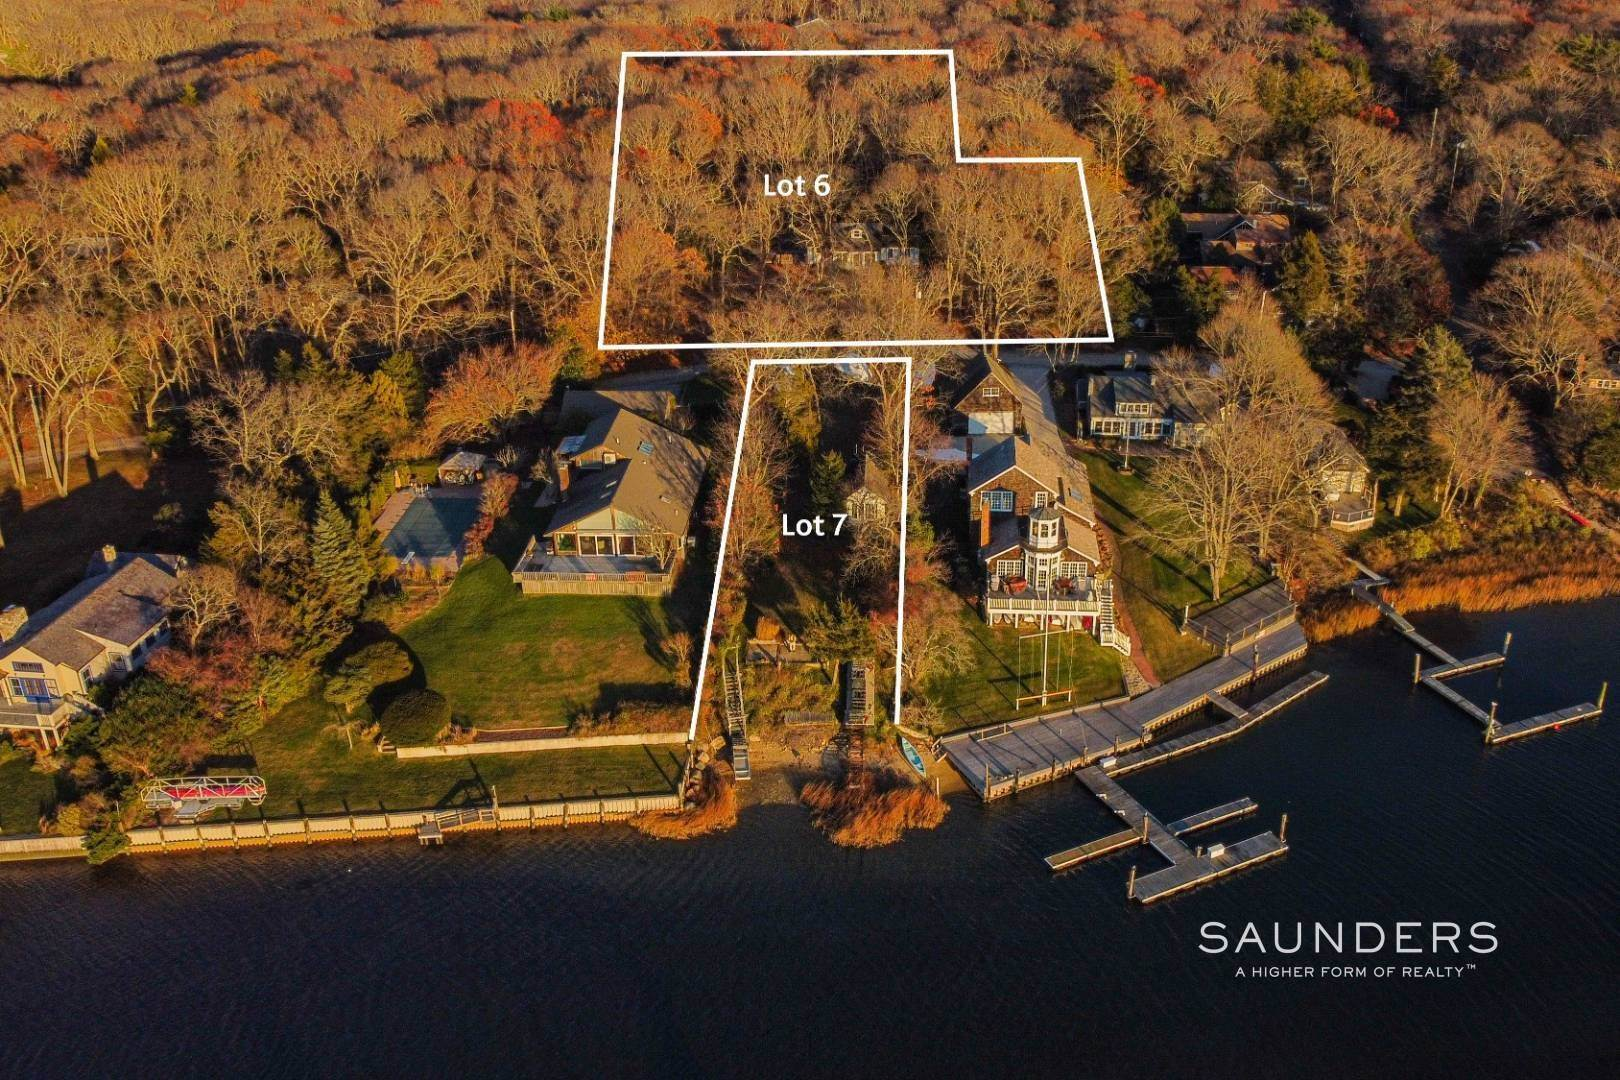 Single Family Homes for Sale at 3 M H Waterfront : Bld A 2600 Sq Ft Home With Dock /+1 Acre Lot! 6 And 7 Outlook Ave, East Hampton, East Hampton Town, NY 11937